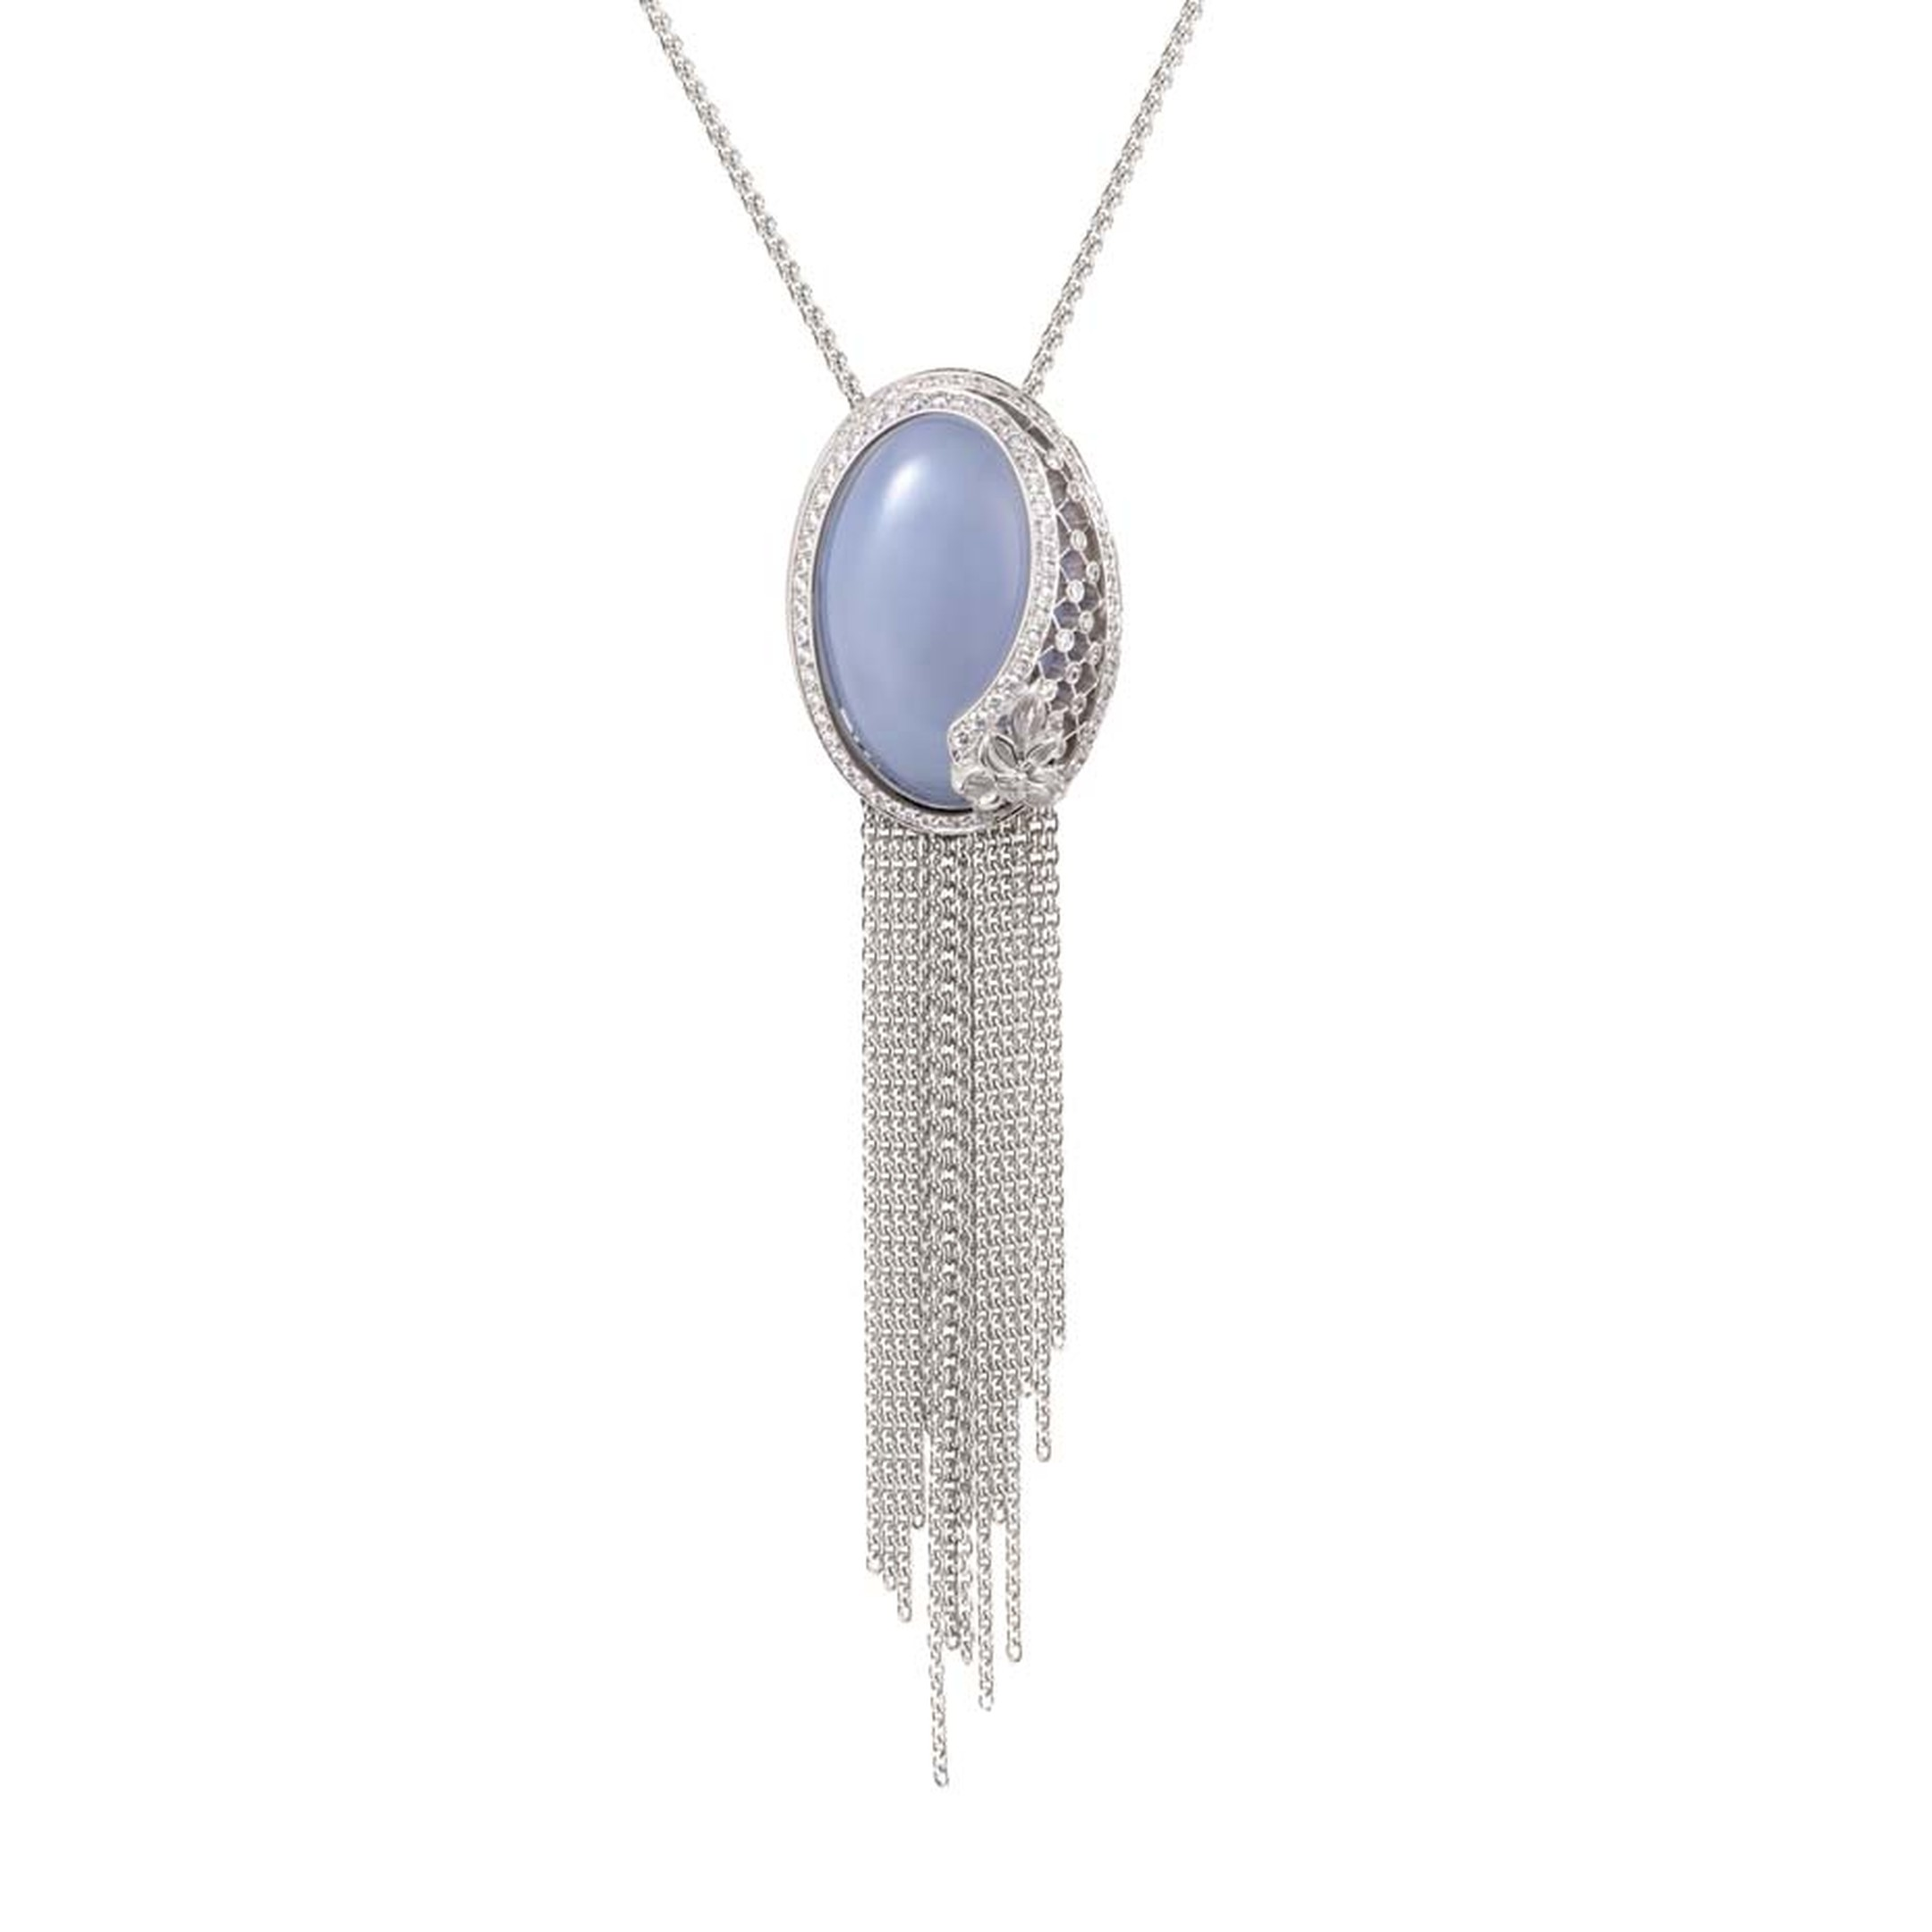 Carrera y Carrera Sierpes maxi necklace in white gold, chalcedony and diamonds.